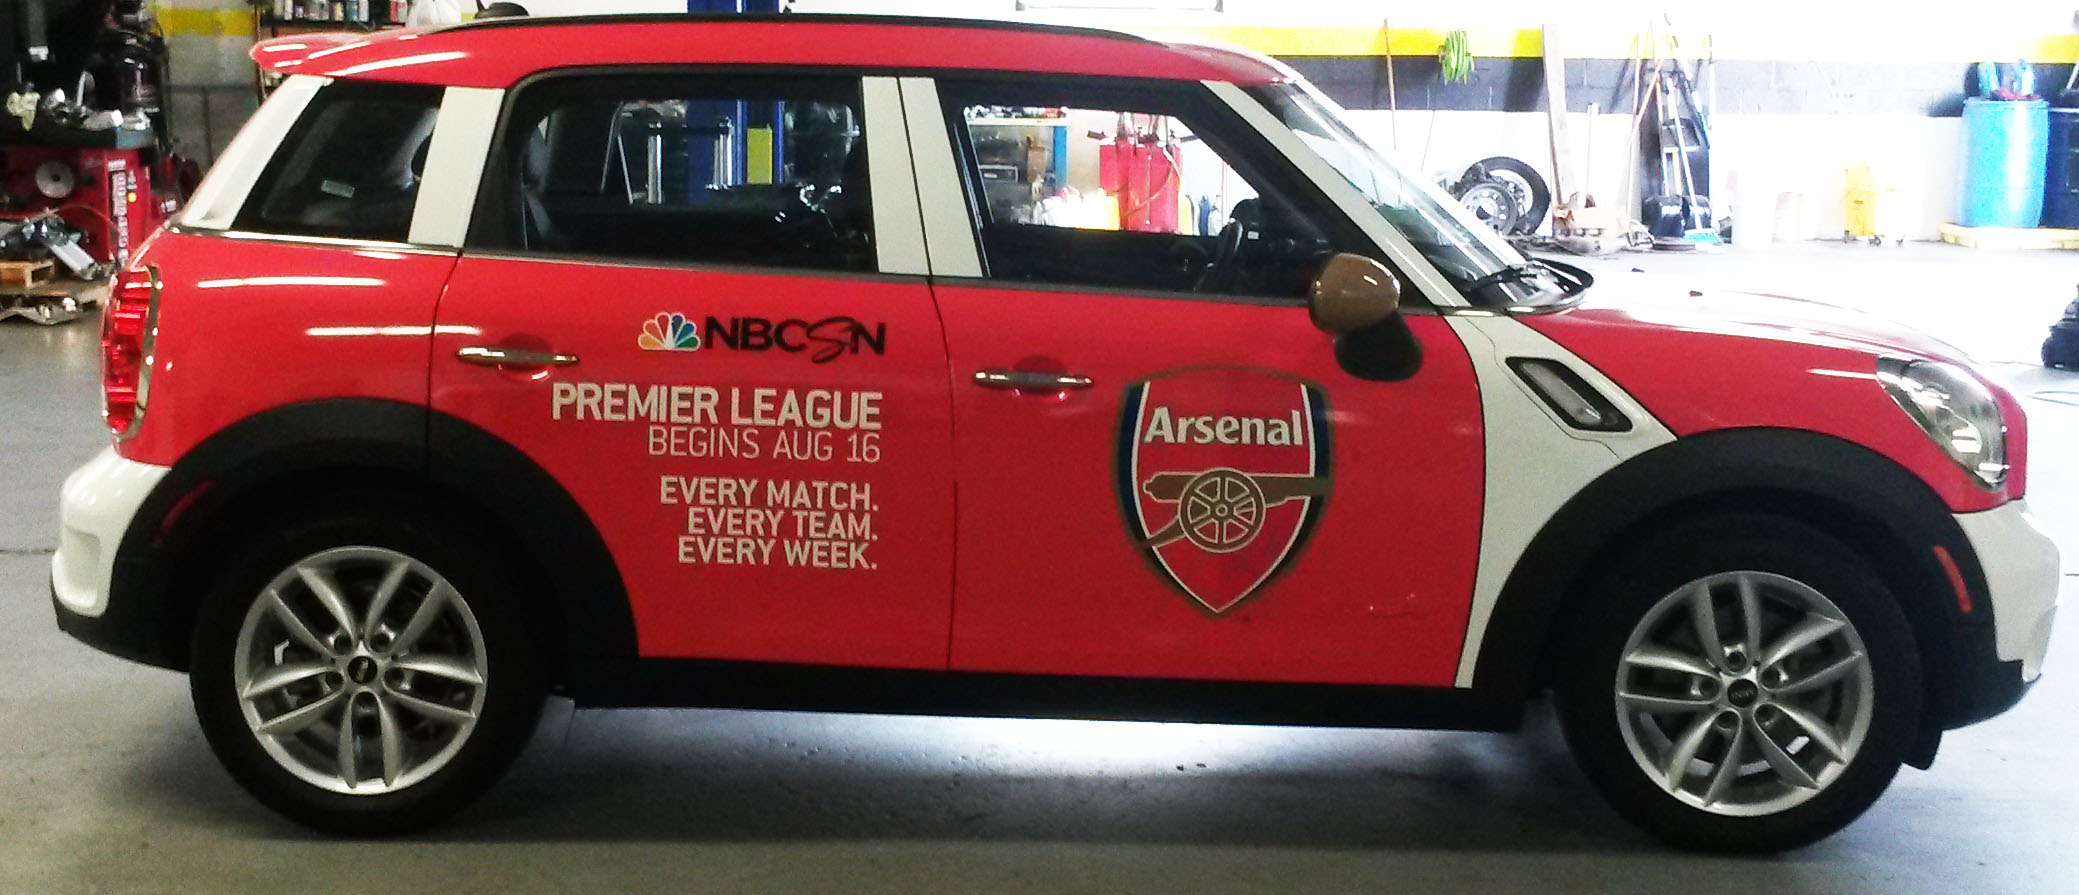 Barclays Premier League Wraps (8 of 14)